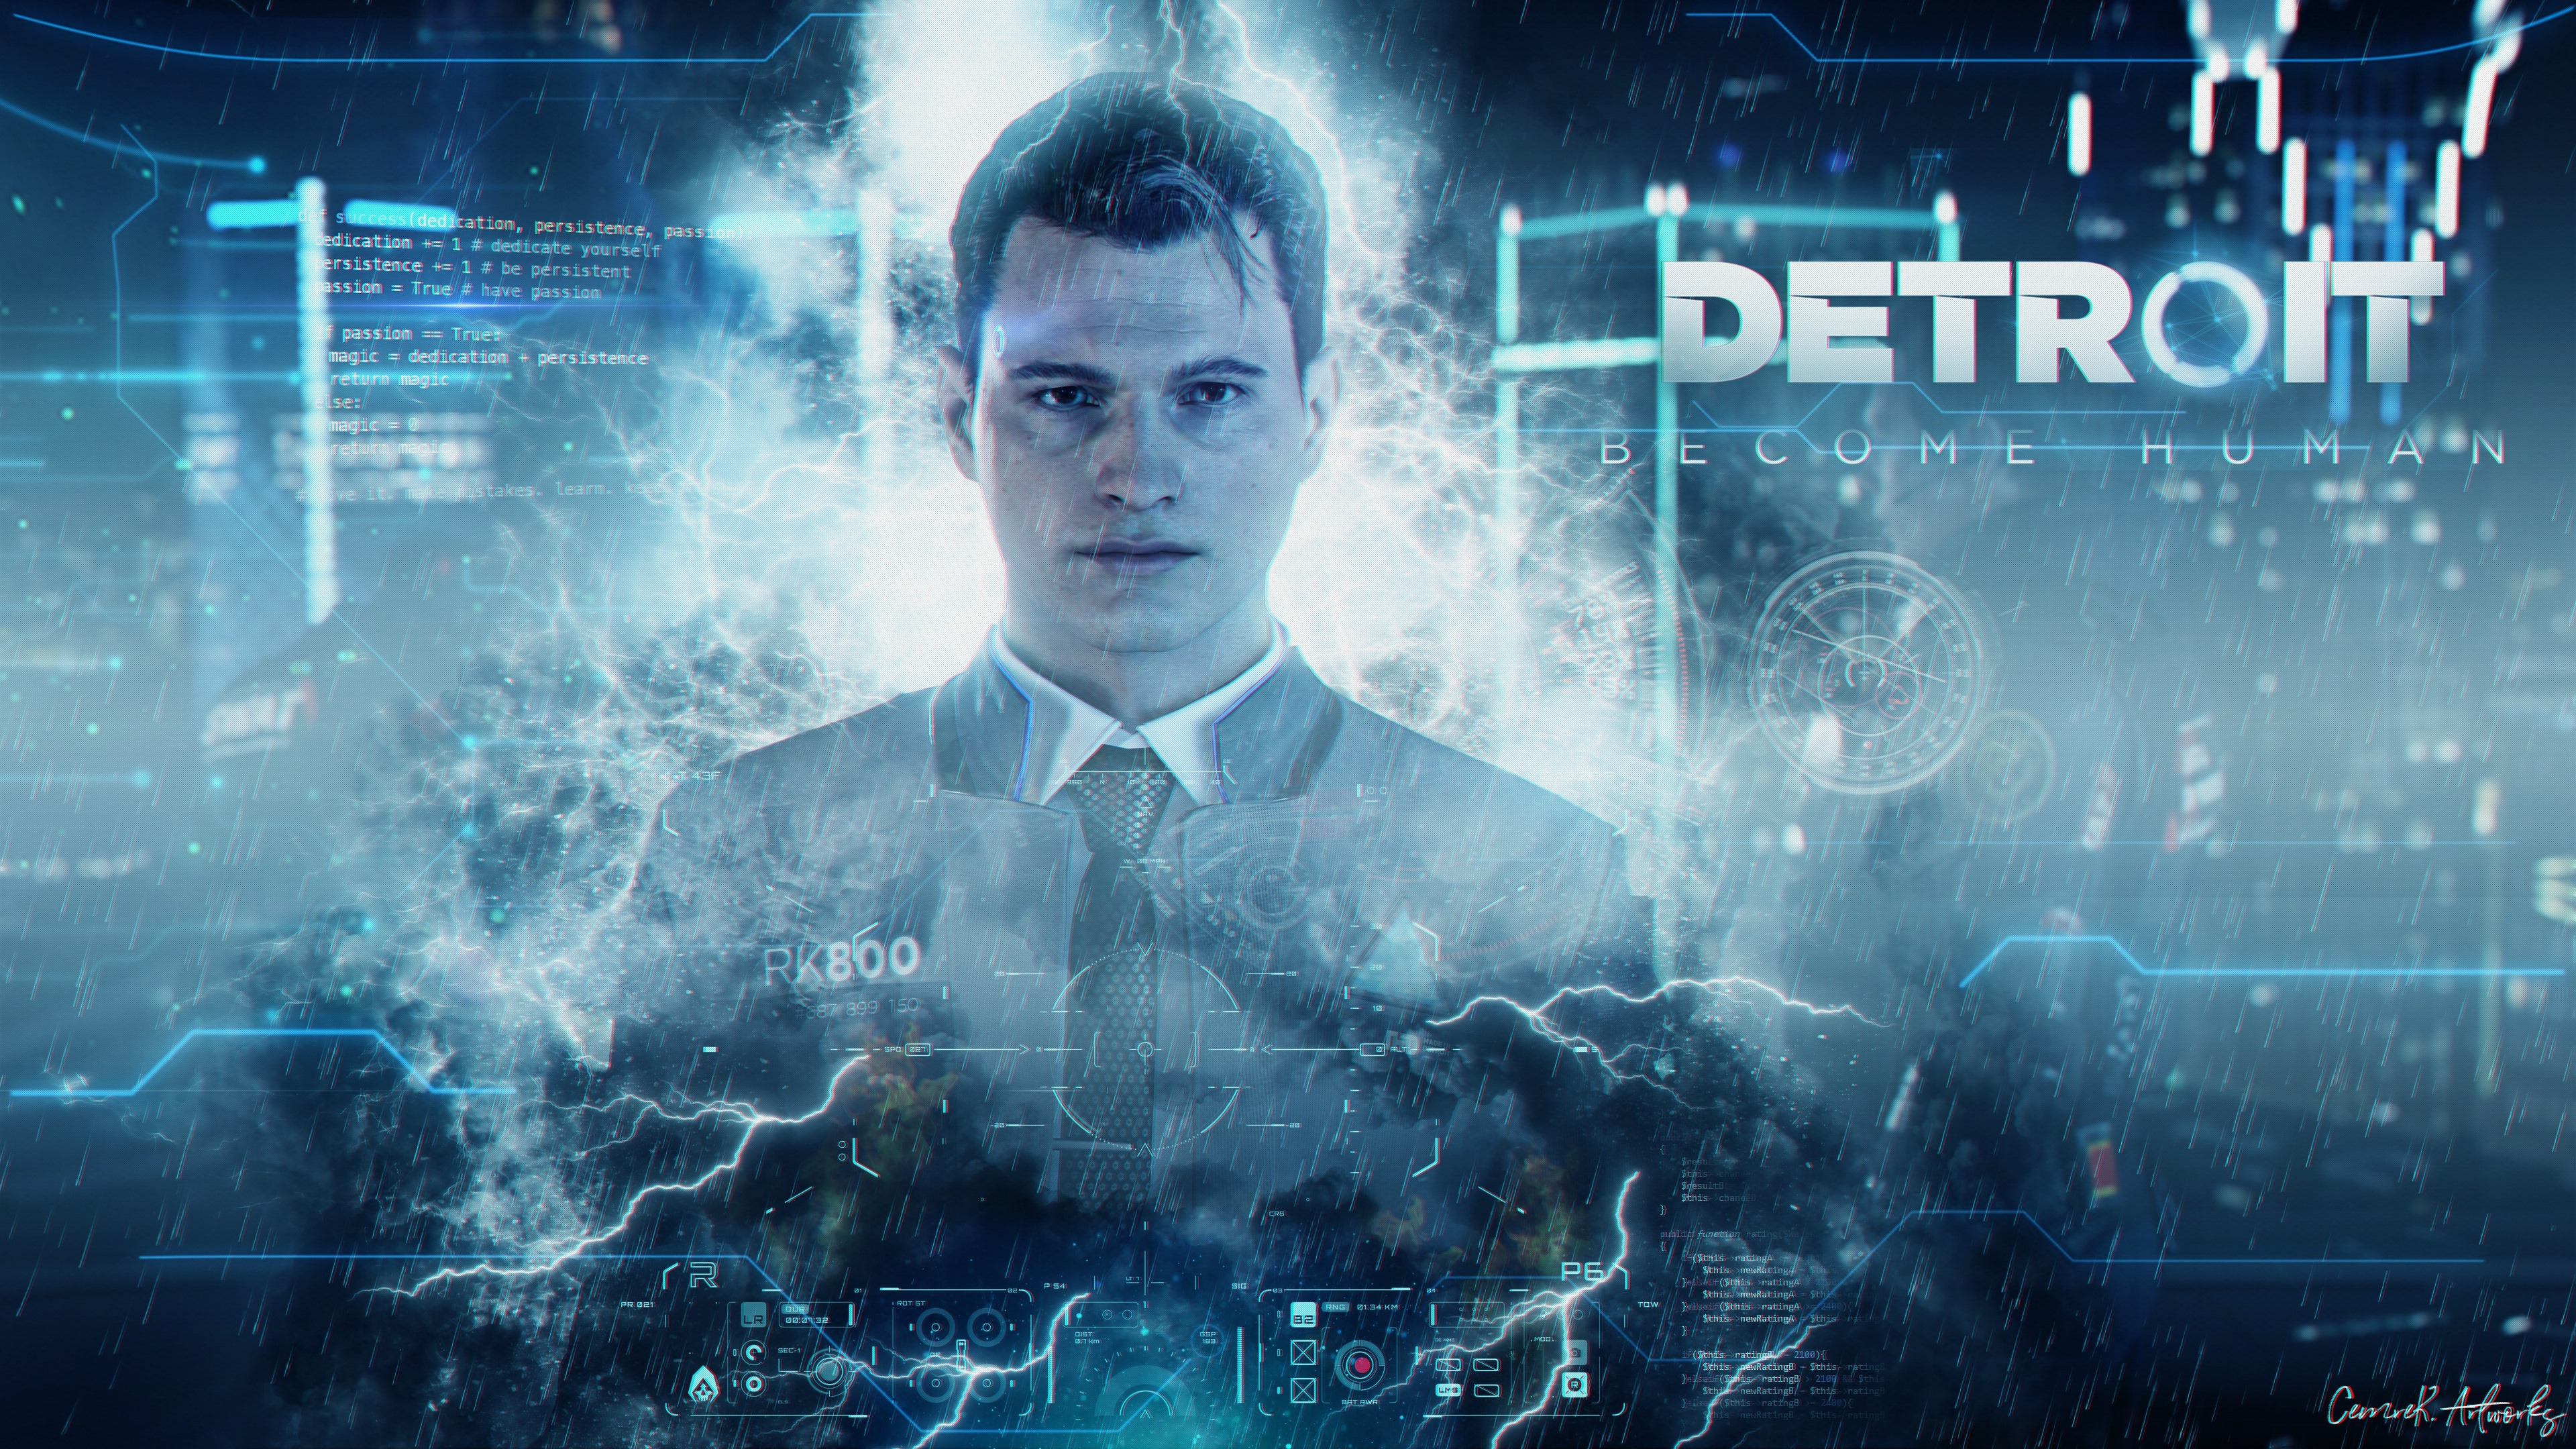 Wallpaper Detroit Become Human 3840x2160 Uhd 4k Picture Image